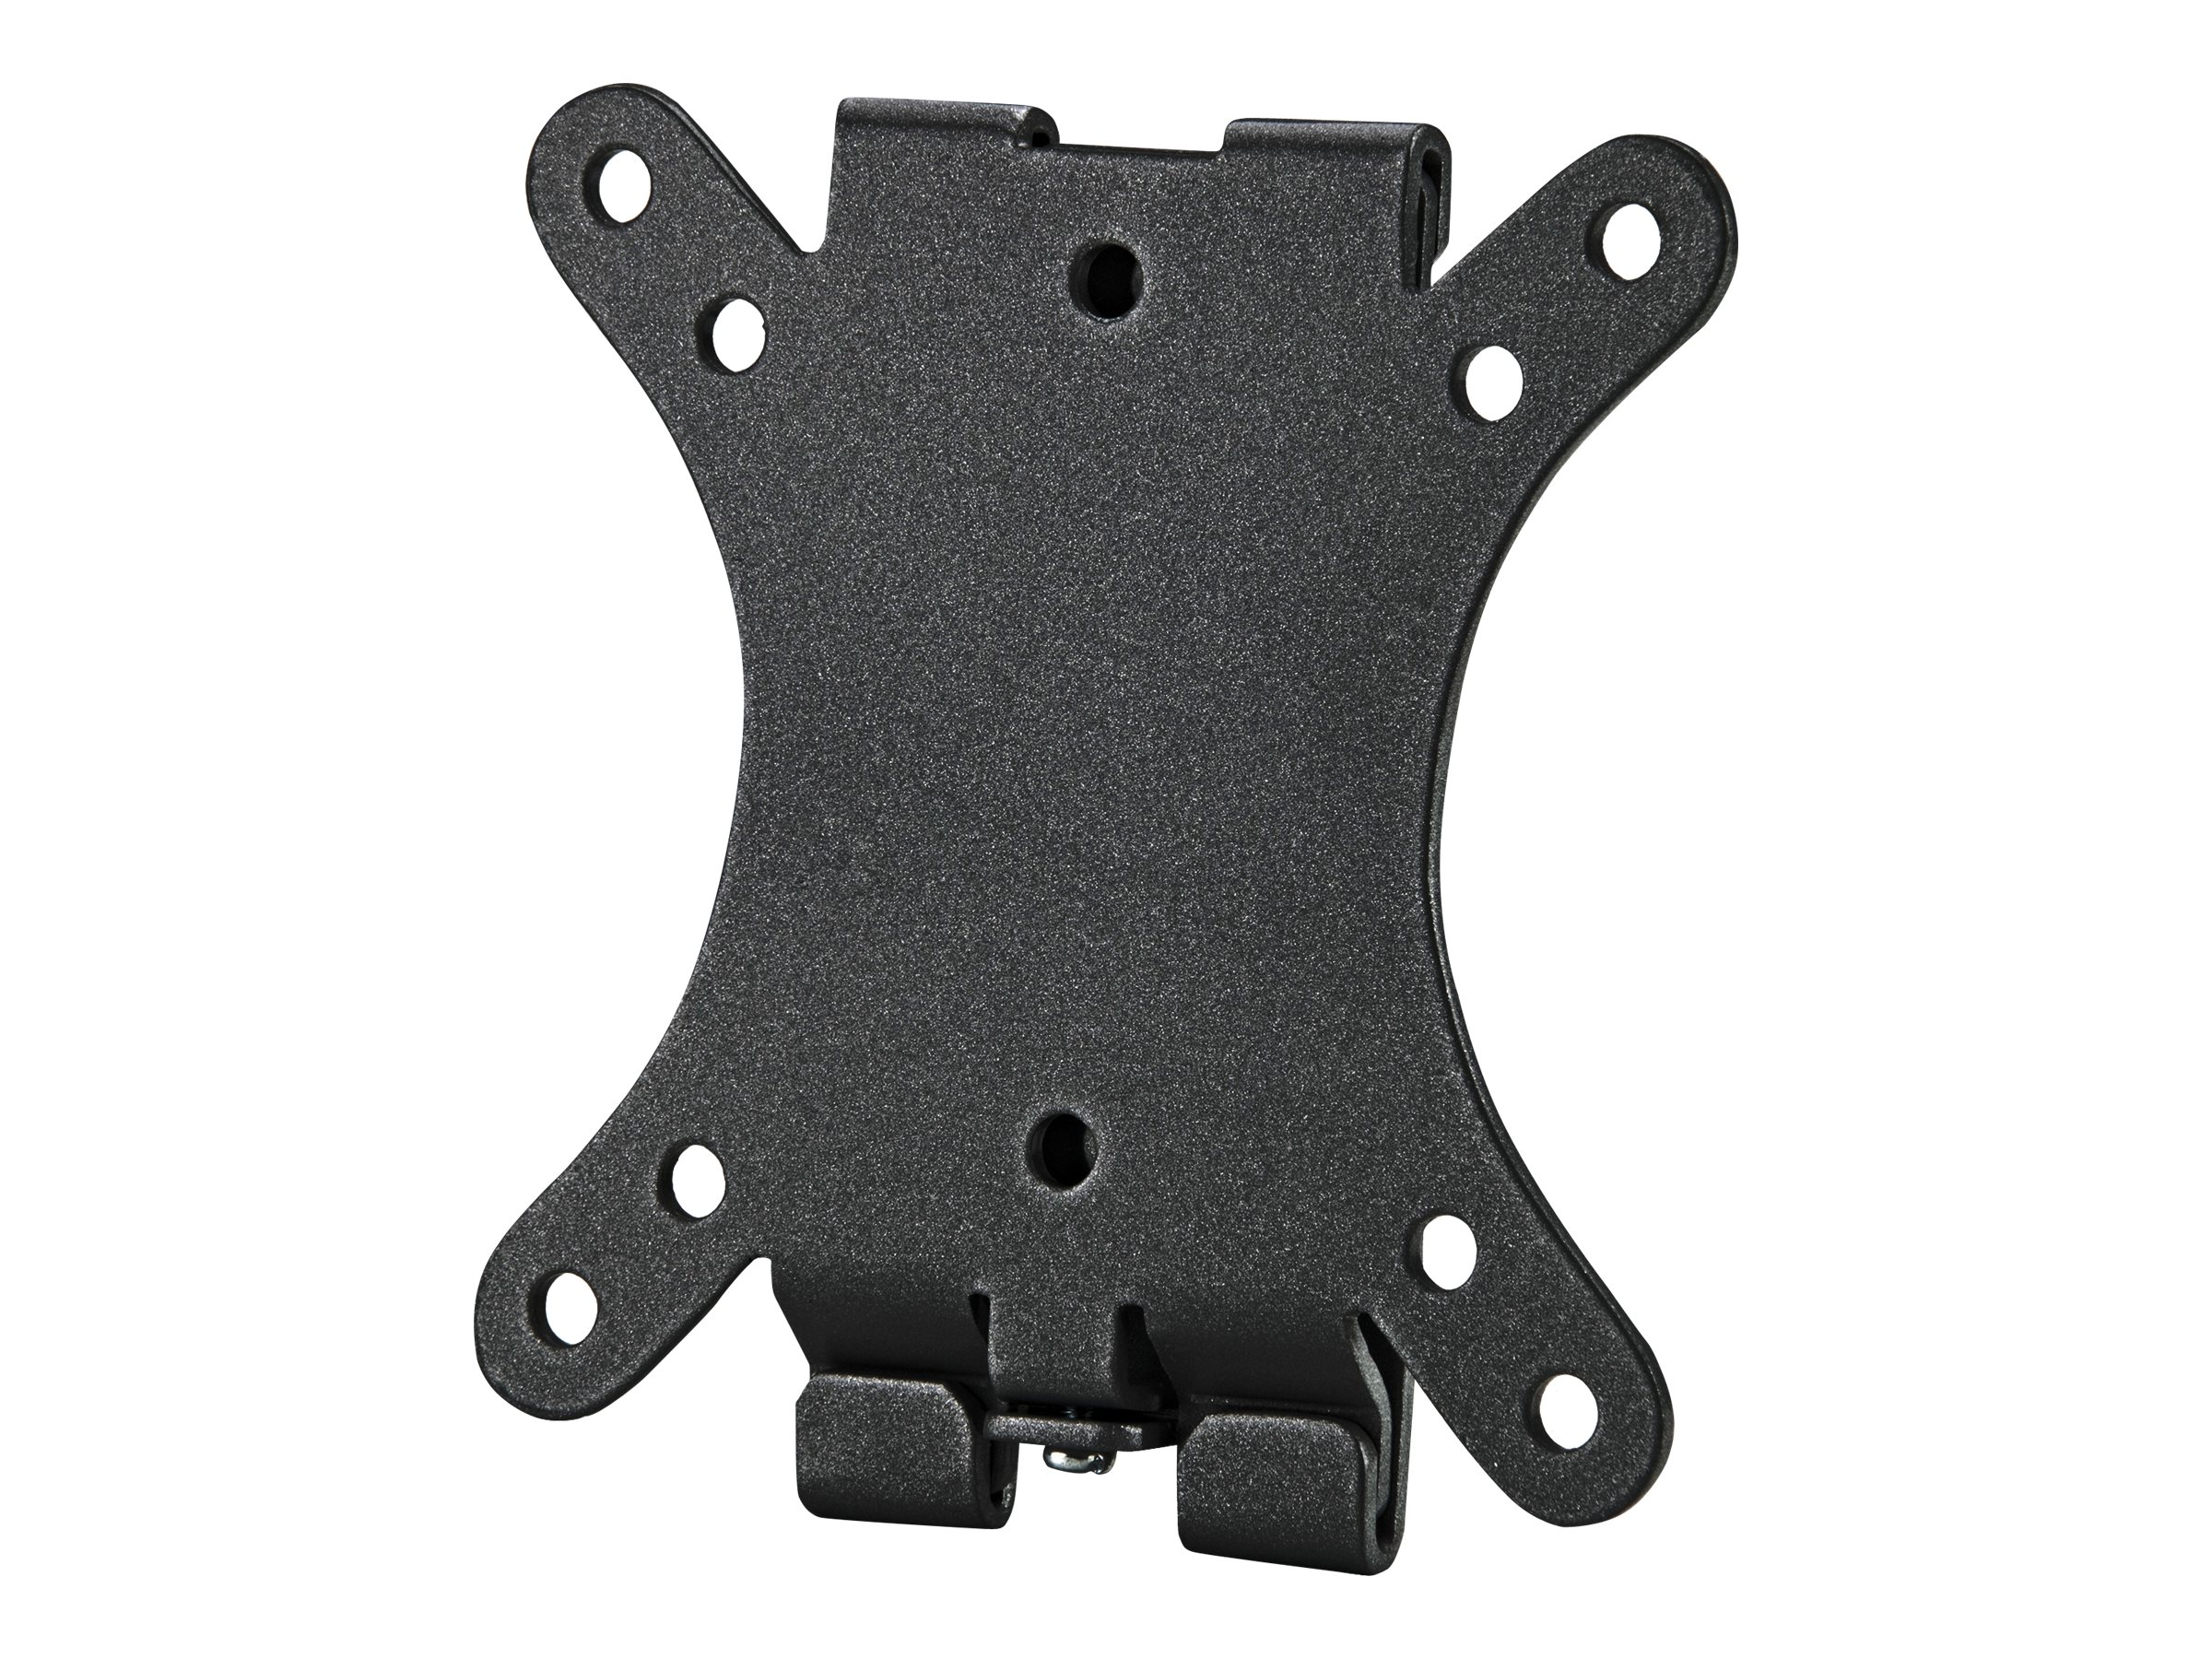 Ergotron Neo-Flex ULD Wall Mount for Flat Panels 13-32, Black, 97-589